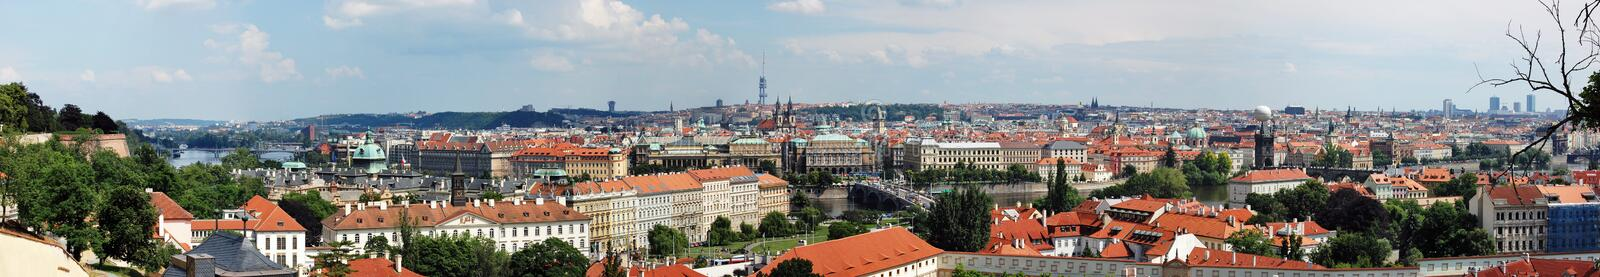 Panoramic view overlooking Prague royalty free stock photography